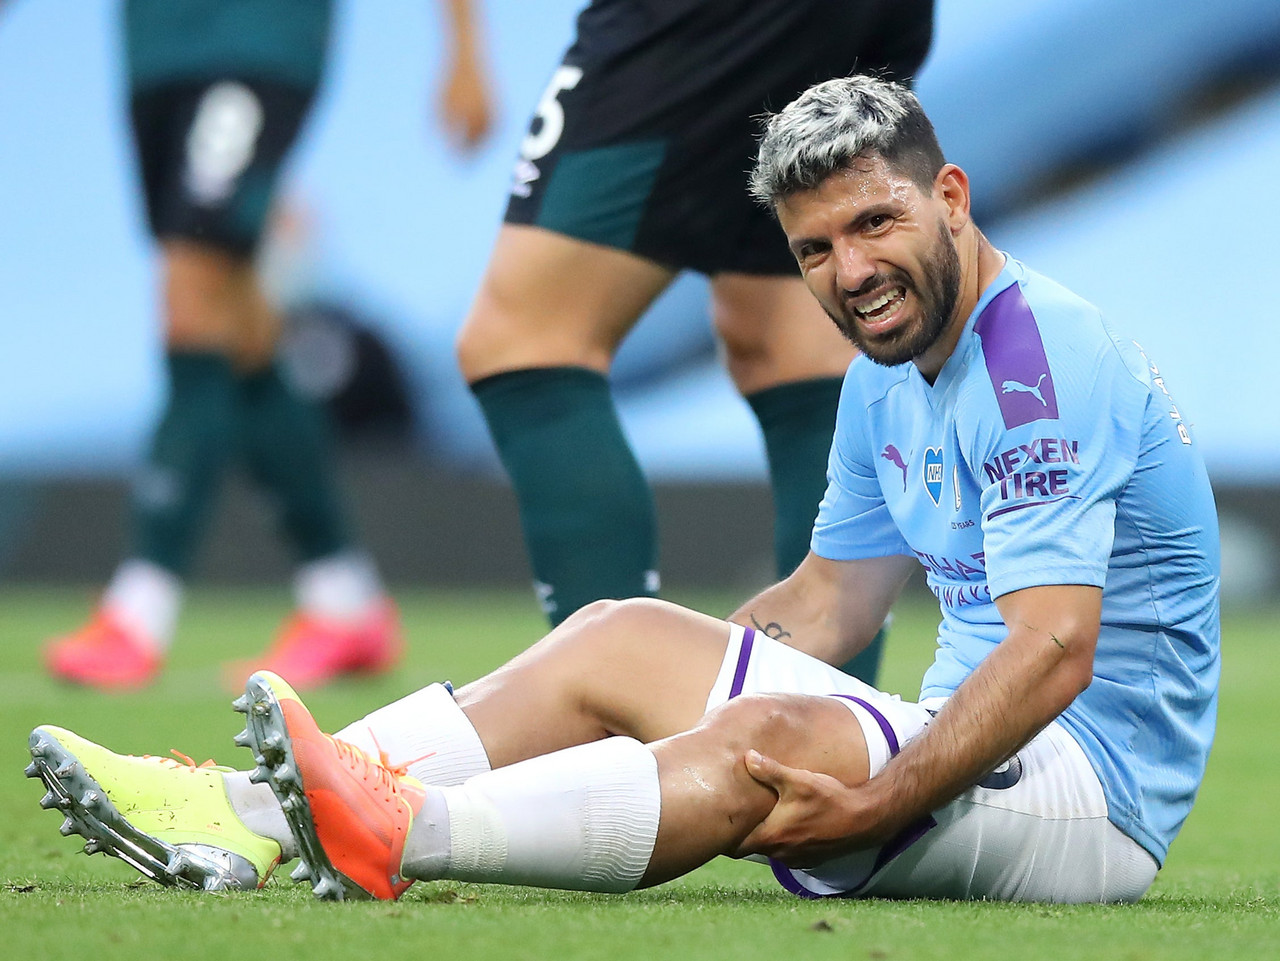 Injuries Will Play a Key Role in the Premier League Title Race